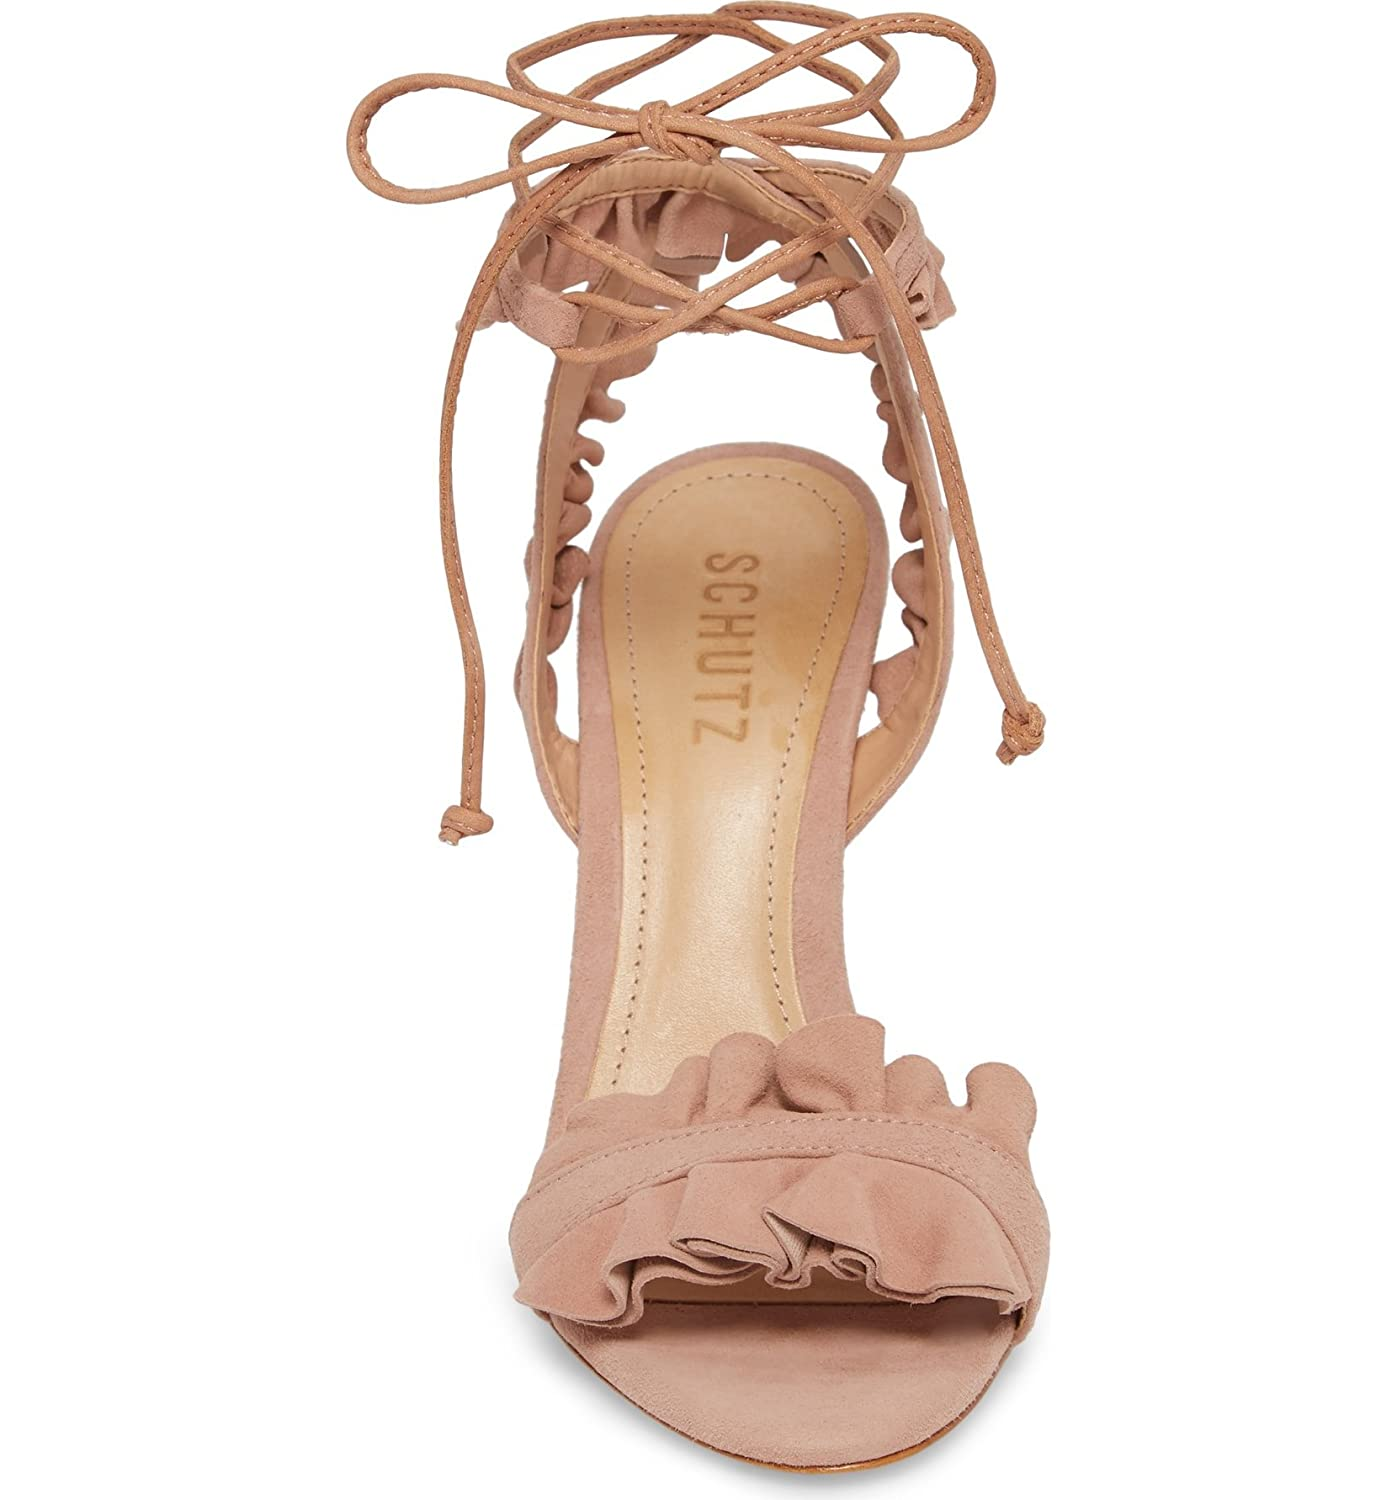 830271ed840f8 Amazon.com: SCHUTZ Irem Peach Blush Suede Tie up Ruffle High Heel ...